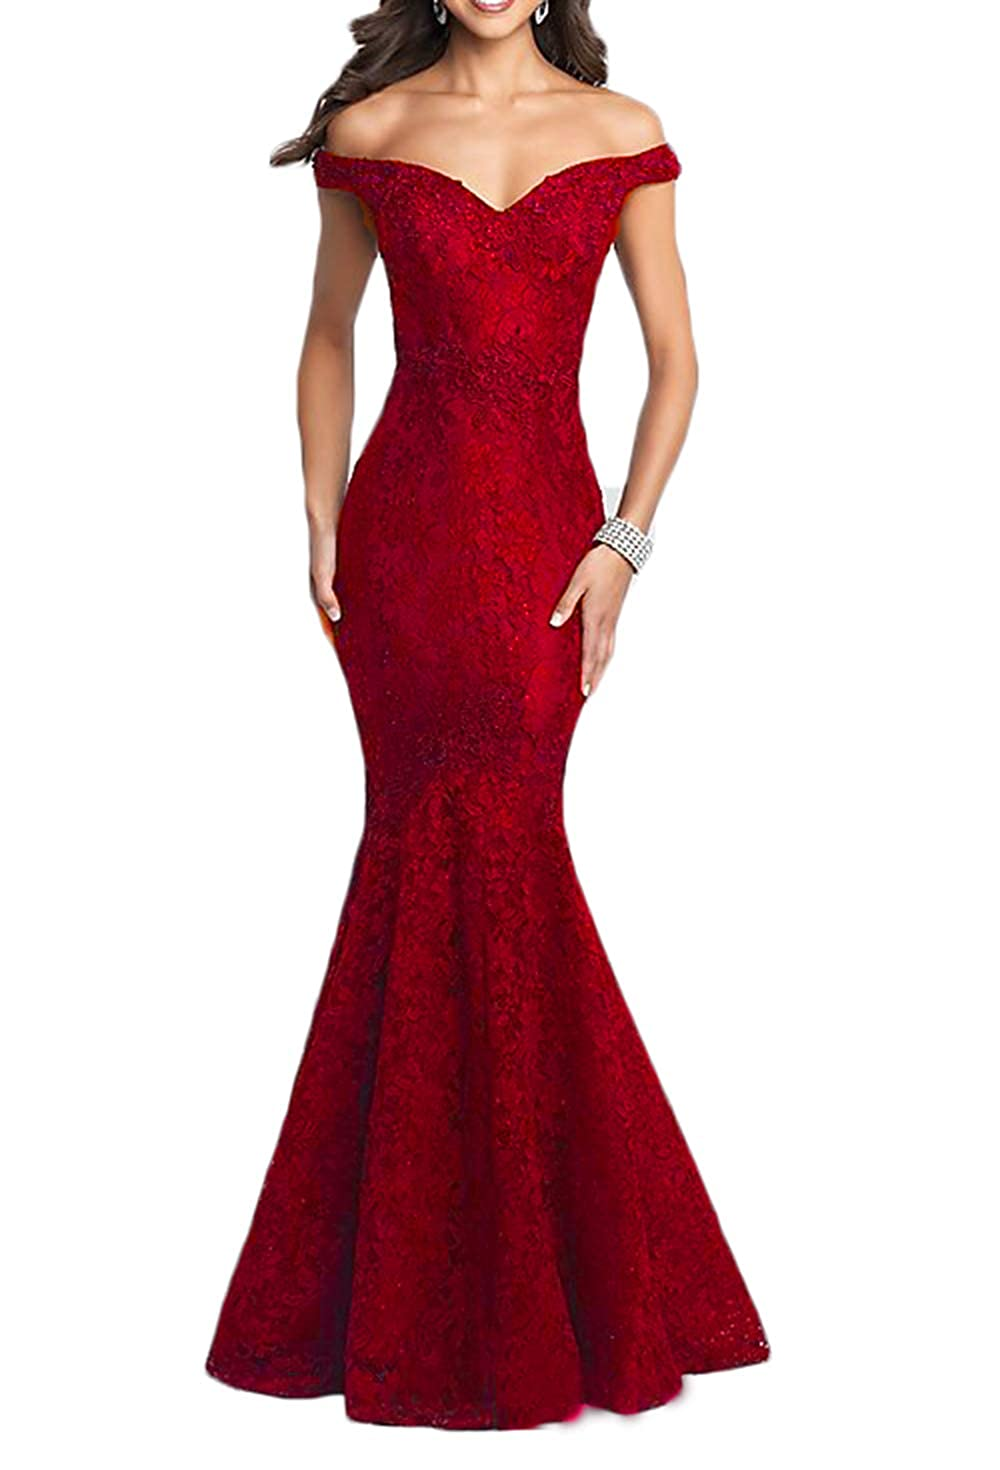 Red Ri Yun Elegant Off The Shoulder Lace Prom Dresses Long Mermaid Beaded Formal Evening Ball Gowns 2018